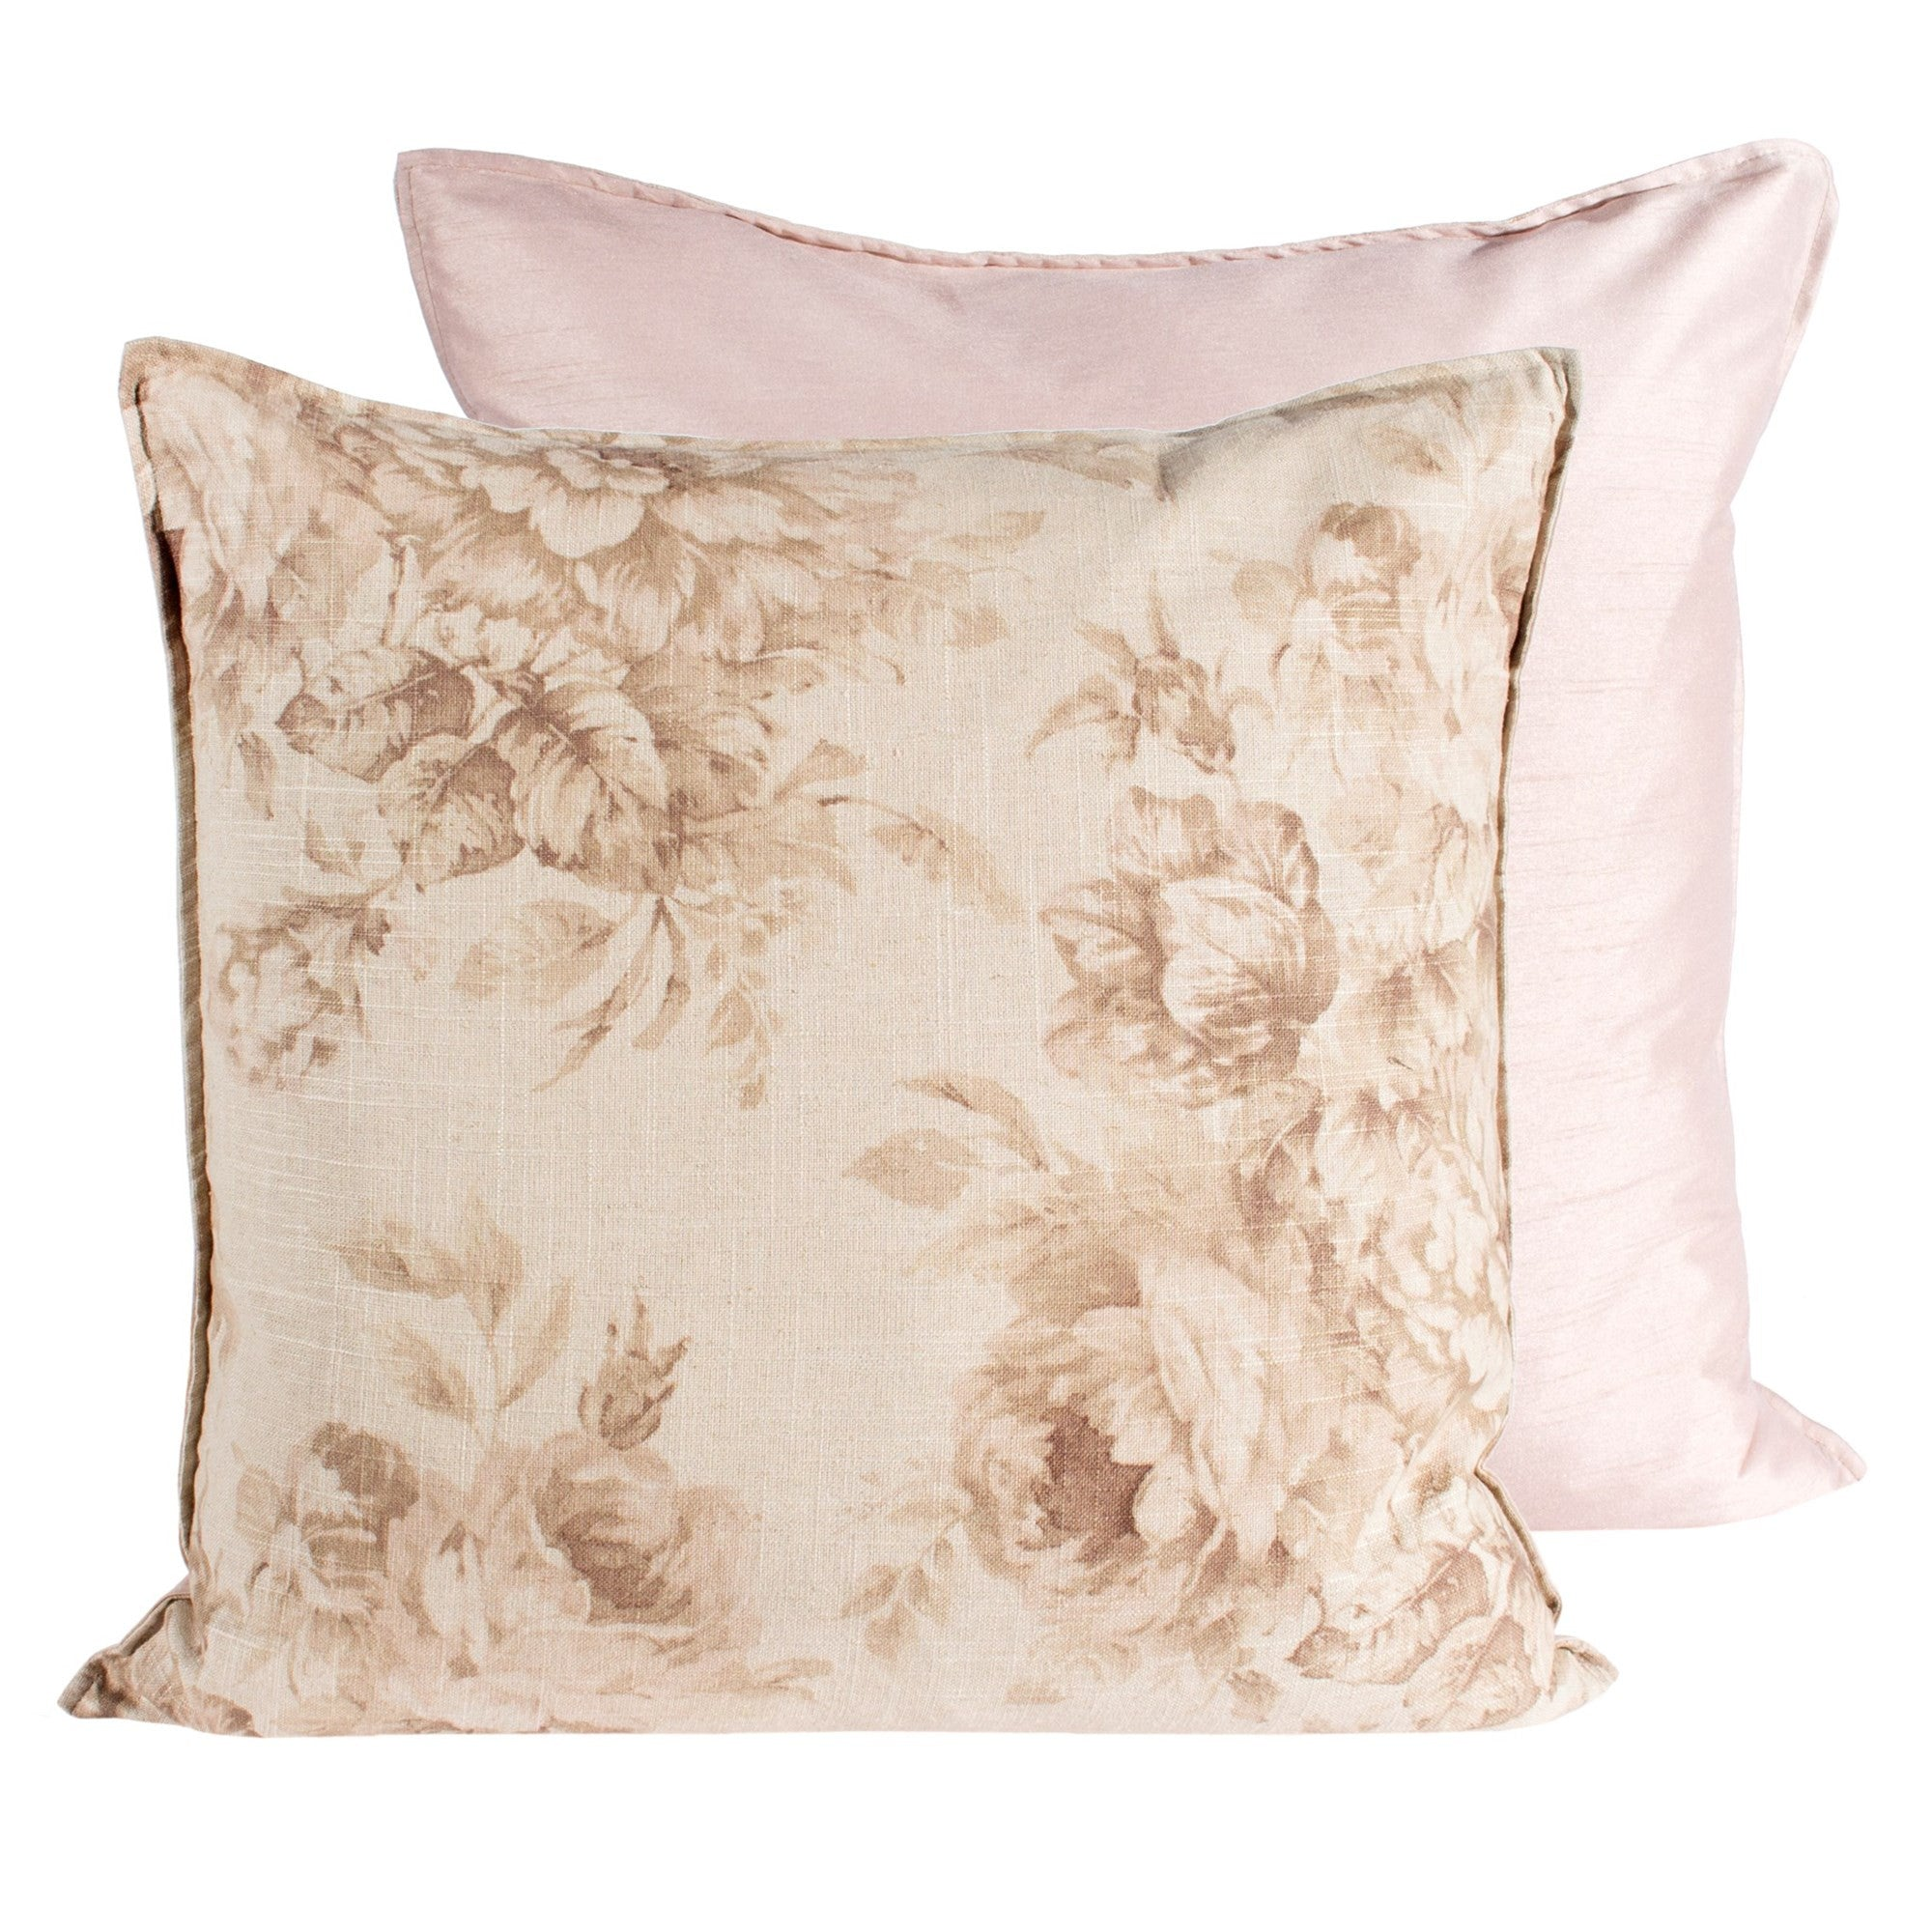 Tea Stain Old Rose Print Pillow - Square -  Accessories - Canfloyd - Putti Fine Furnishings Toronto Canada